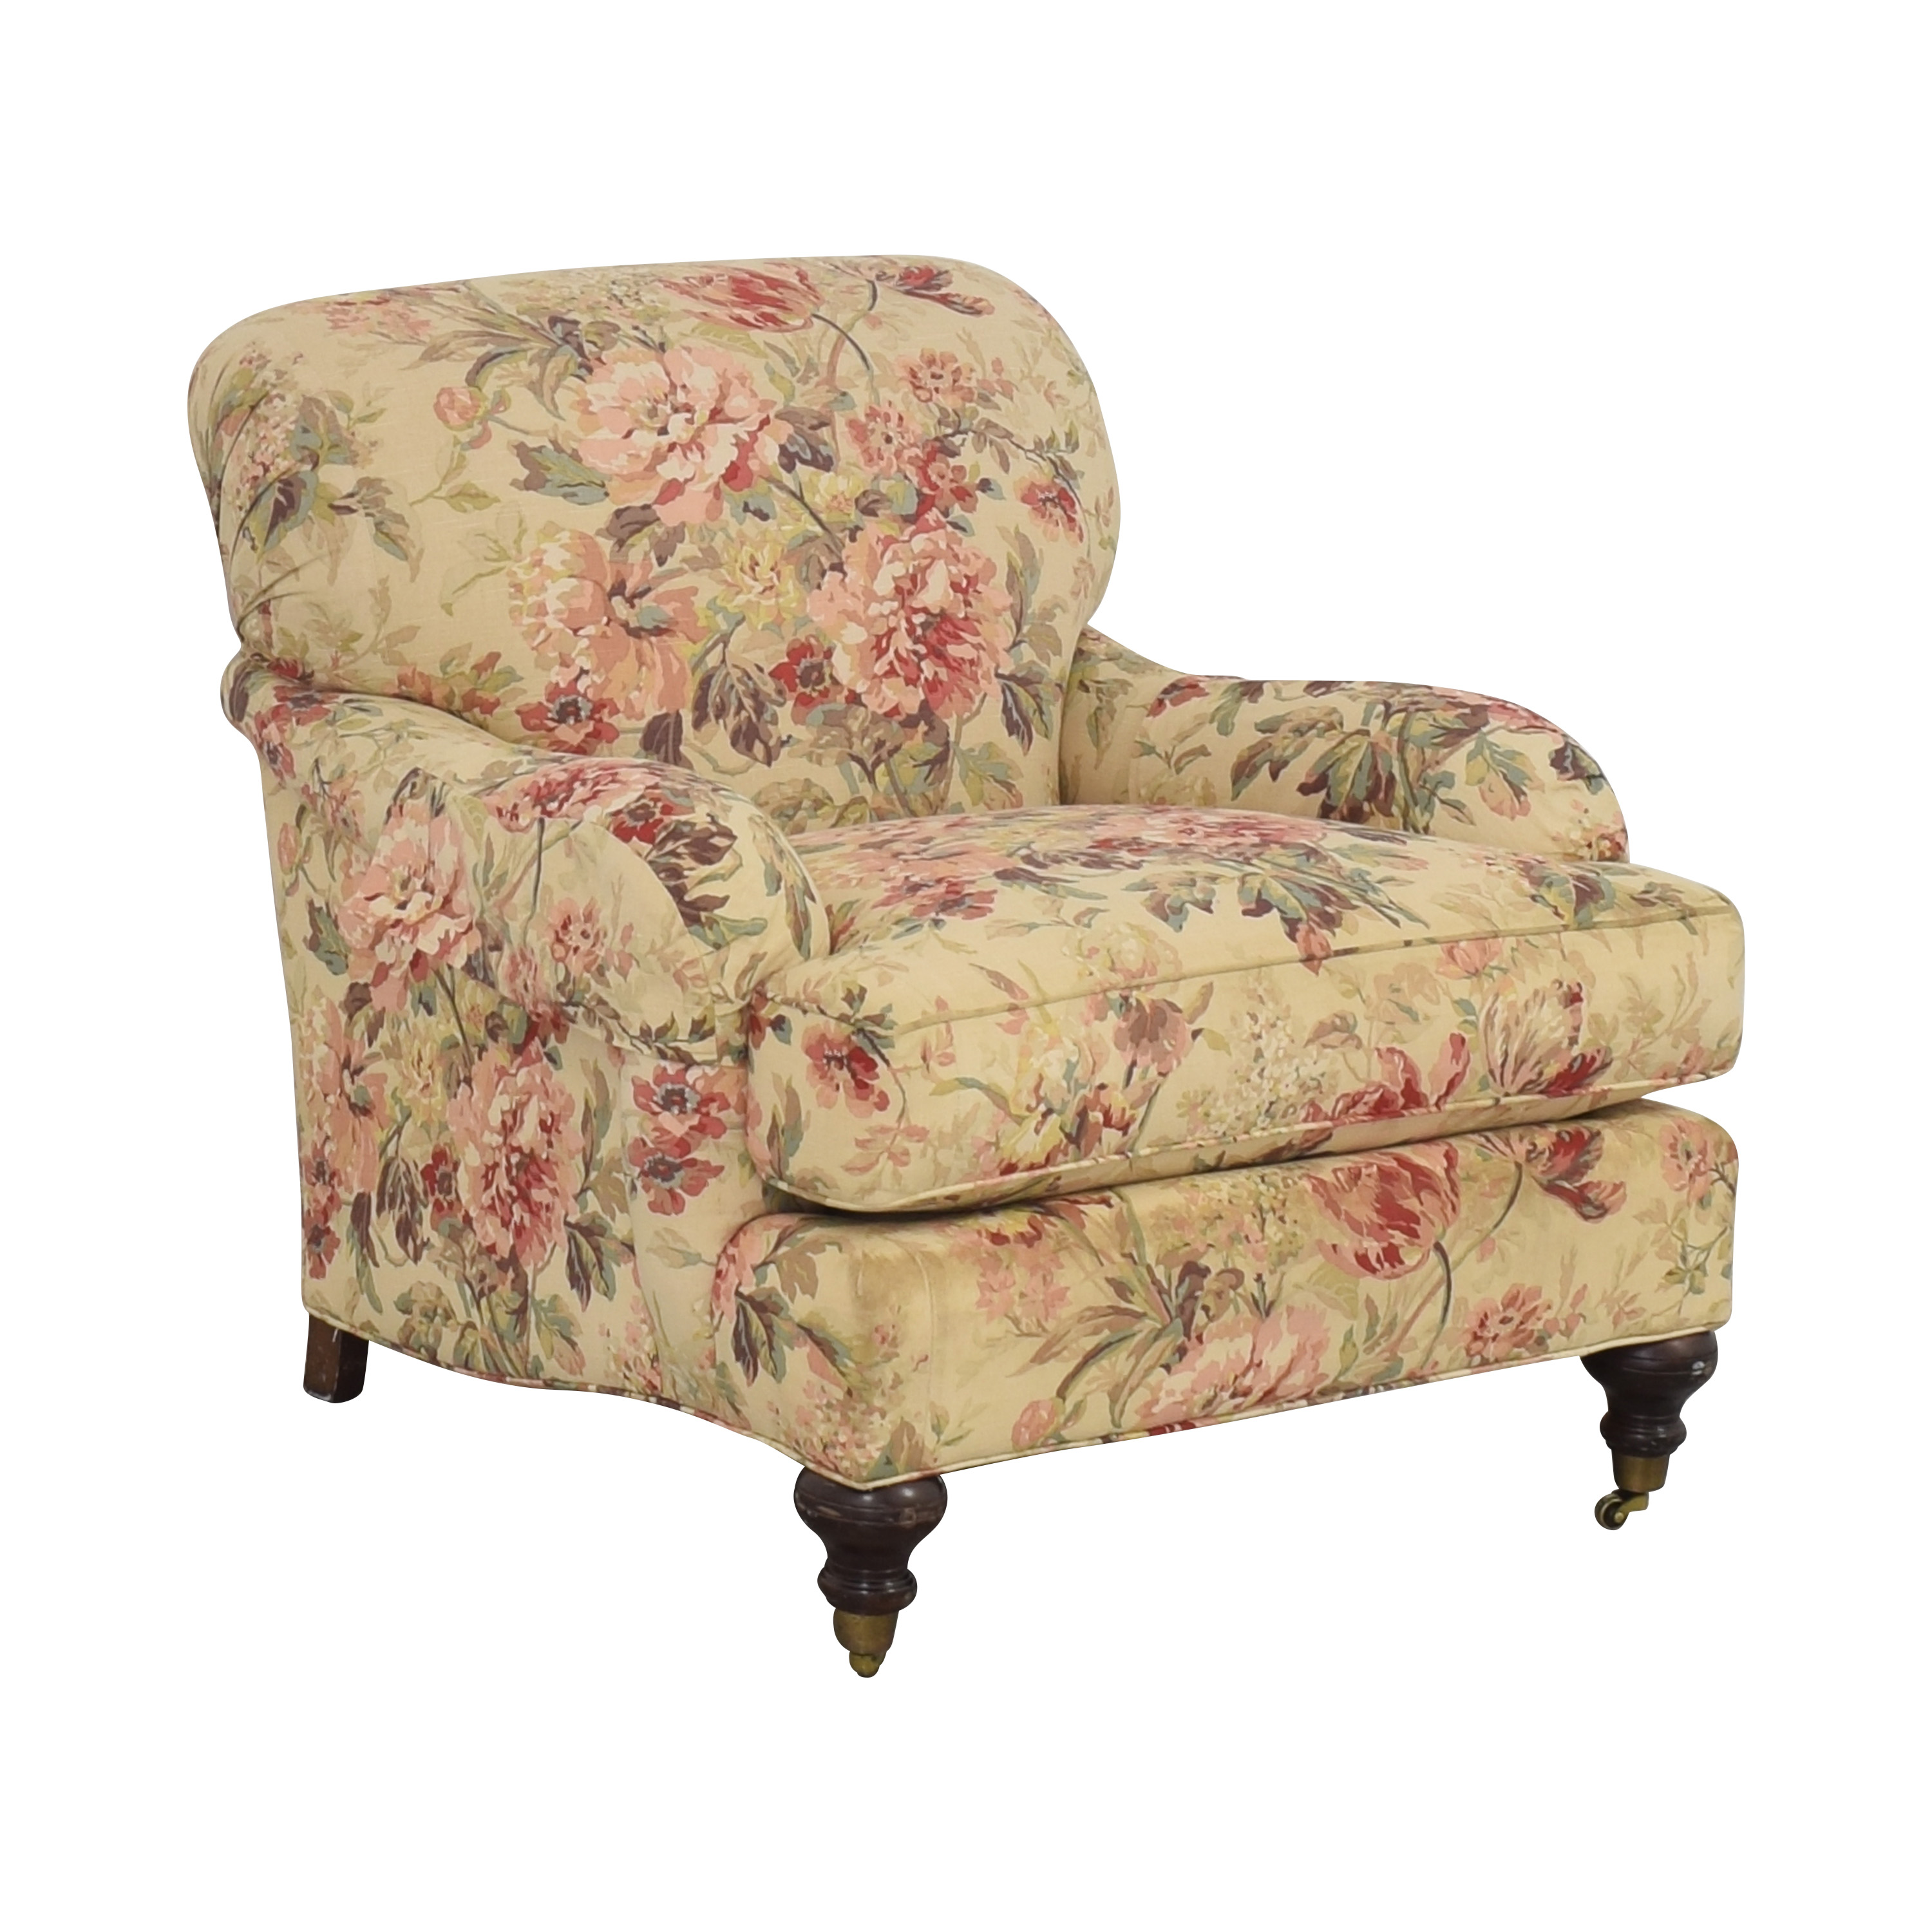 William Alan William Alan Floral Accent Chair second hand